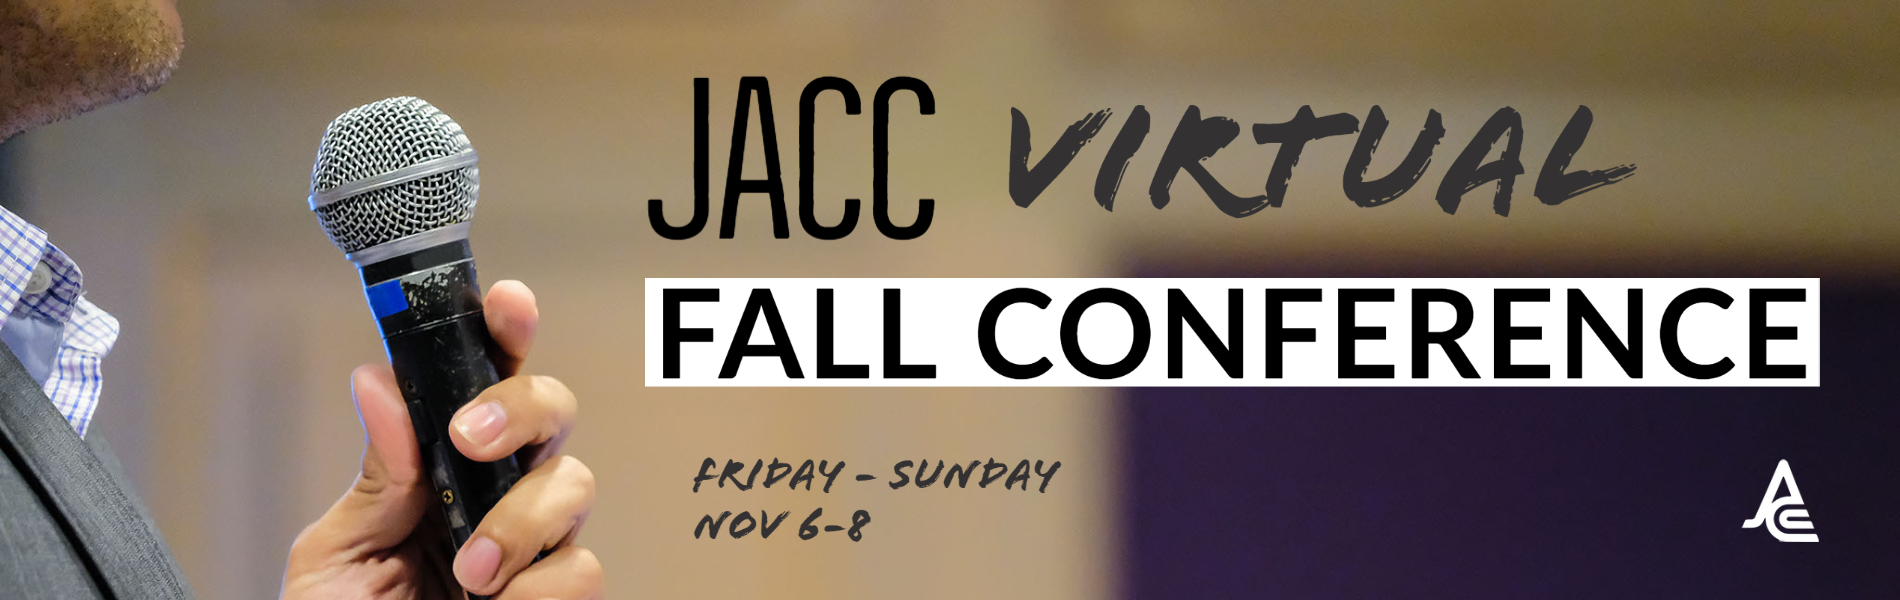 JACC Virtual Fall Conference